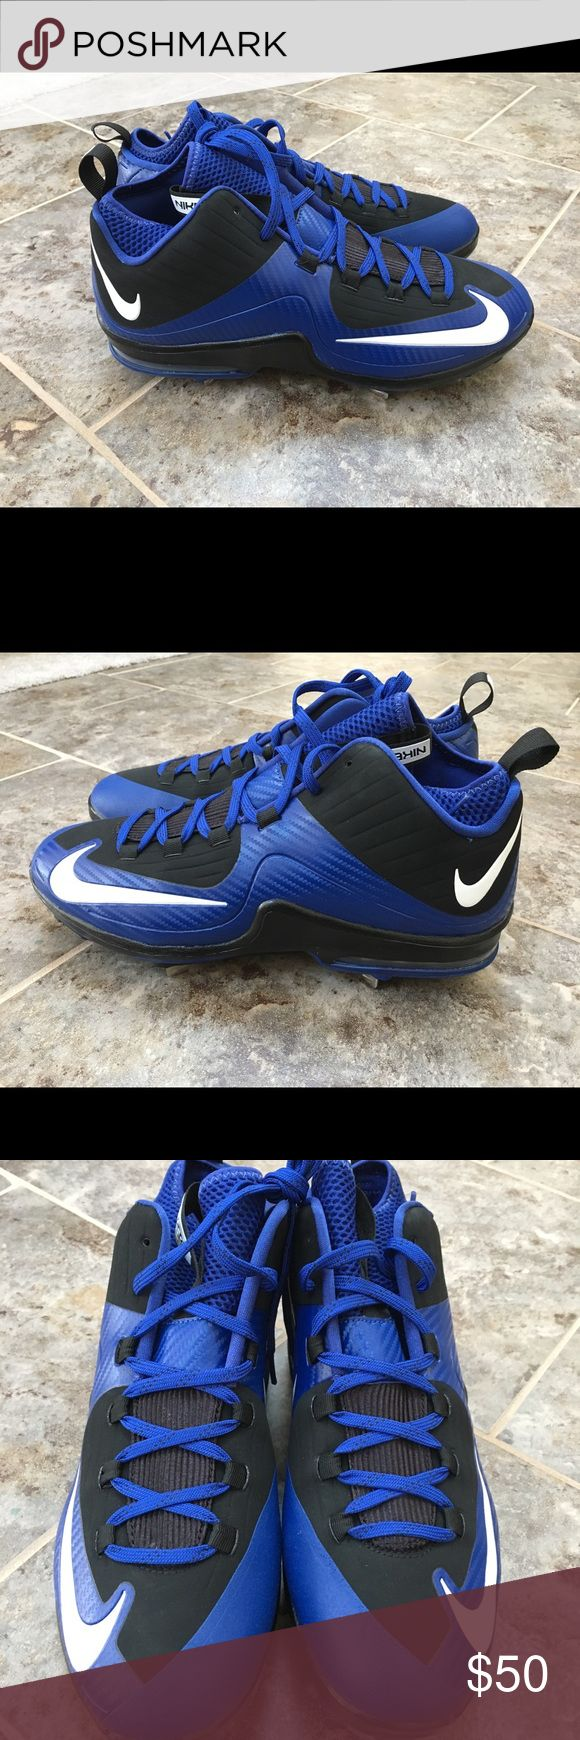 Nike Air Max MVP Elite 2 3/4 Metal Baseball Cleats Brand new, without box. Size: 11.5. Color: Black/Blue. Style: 684687-015. Please make OFFICIAL OFFERS and BUNDLES!! Fast shipping!! Nike Shoes Athletic Shoes